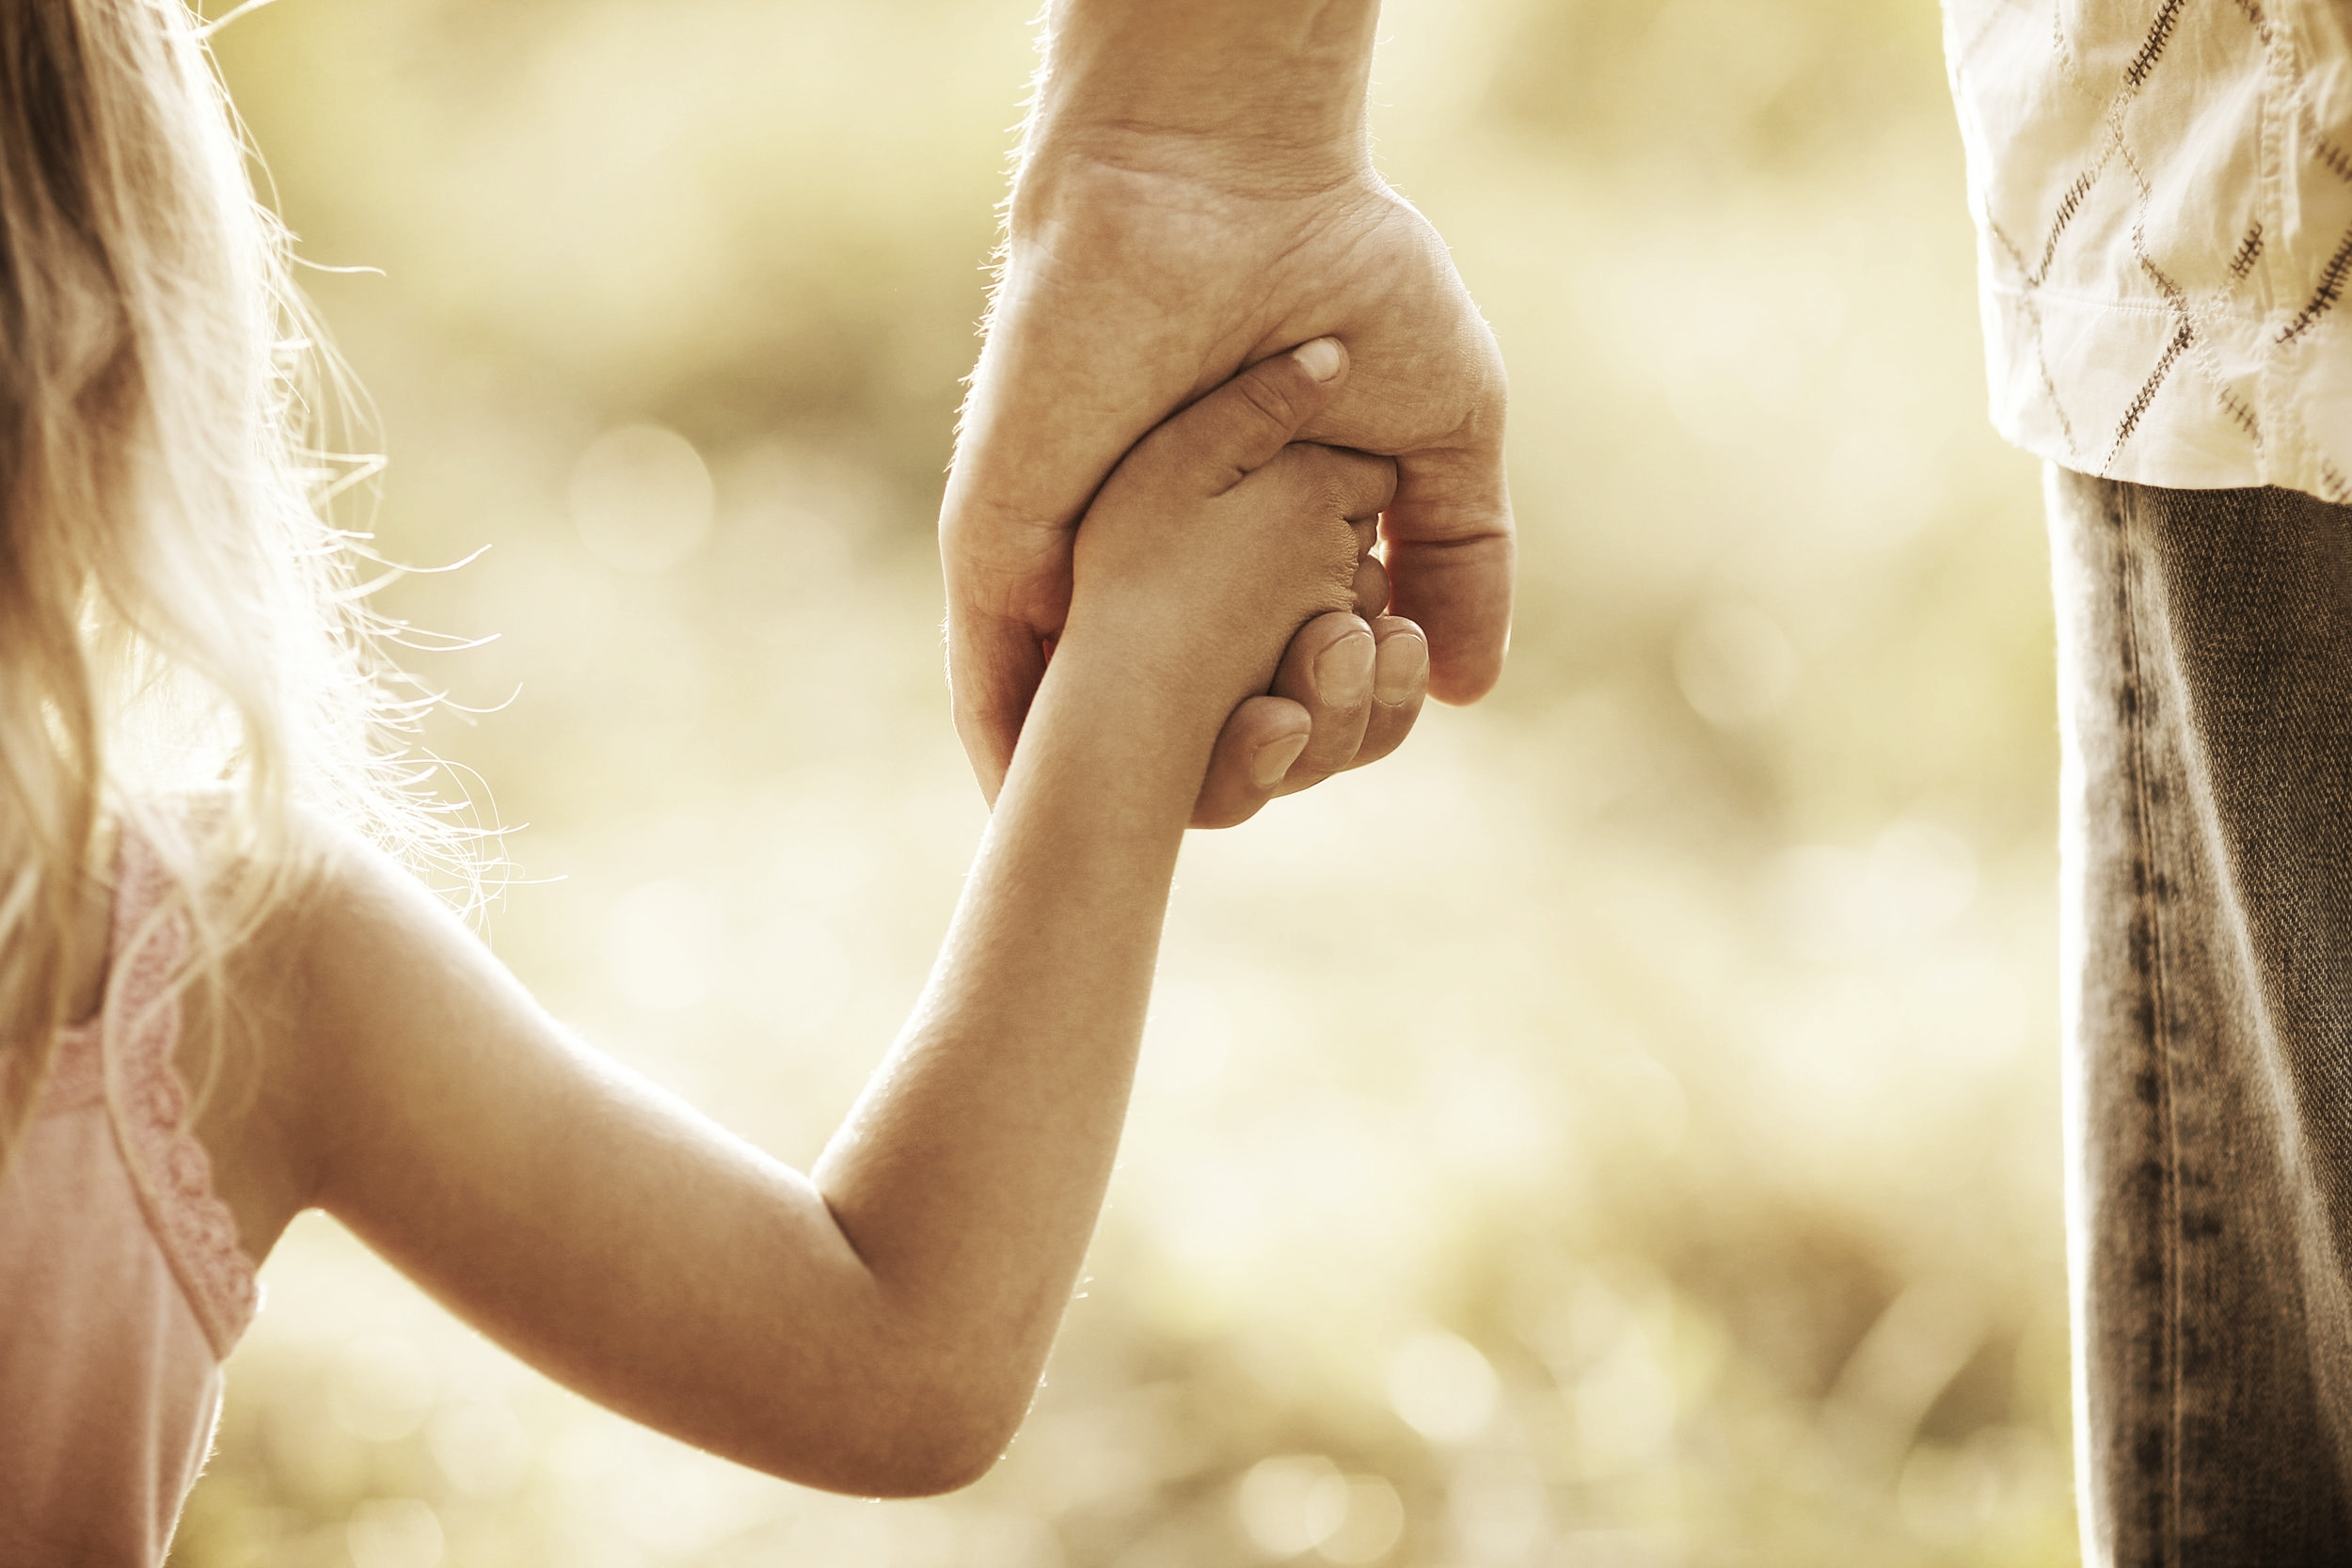 Our Philosophy - Family law is more than just numbers on paper. It is people. You deserve options that reflect your family's unique situation. That is why at Spencer Family Law, we don't stop at filing your petition, we help you plan for, and shape your future.